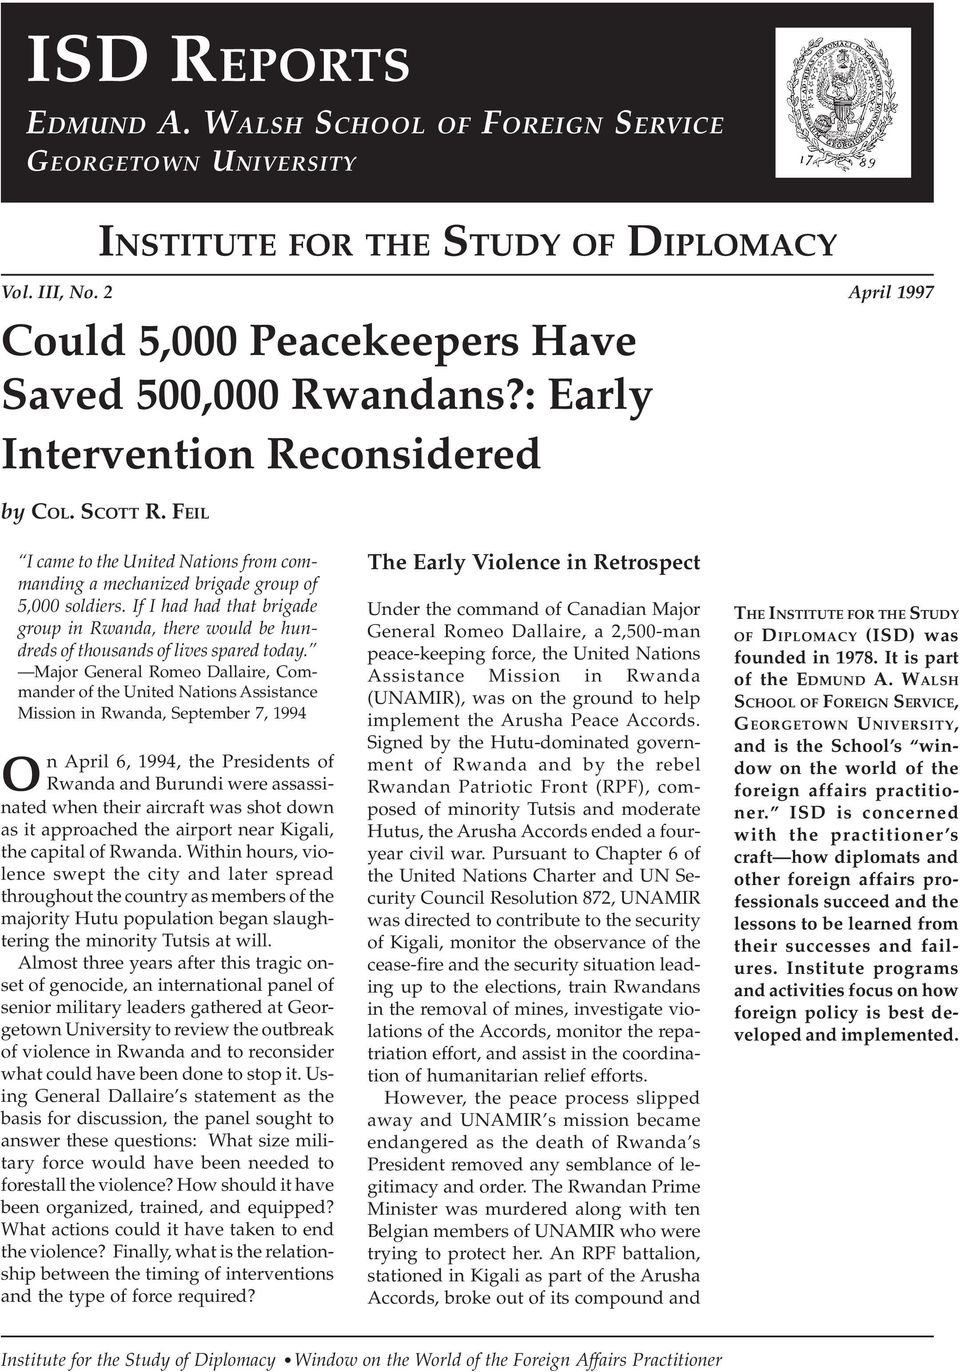 If I had had that brigade group in Rwanda, there would be hundreds of thousands of lives spared today.